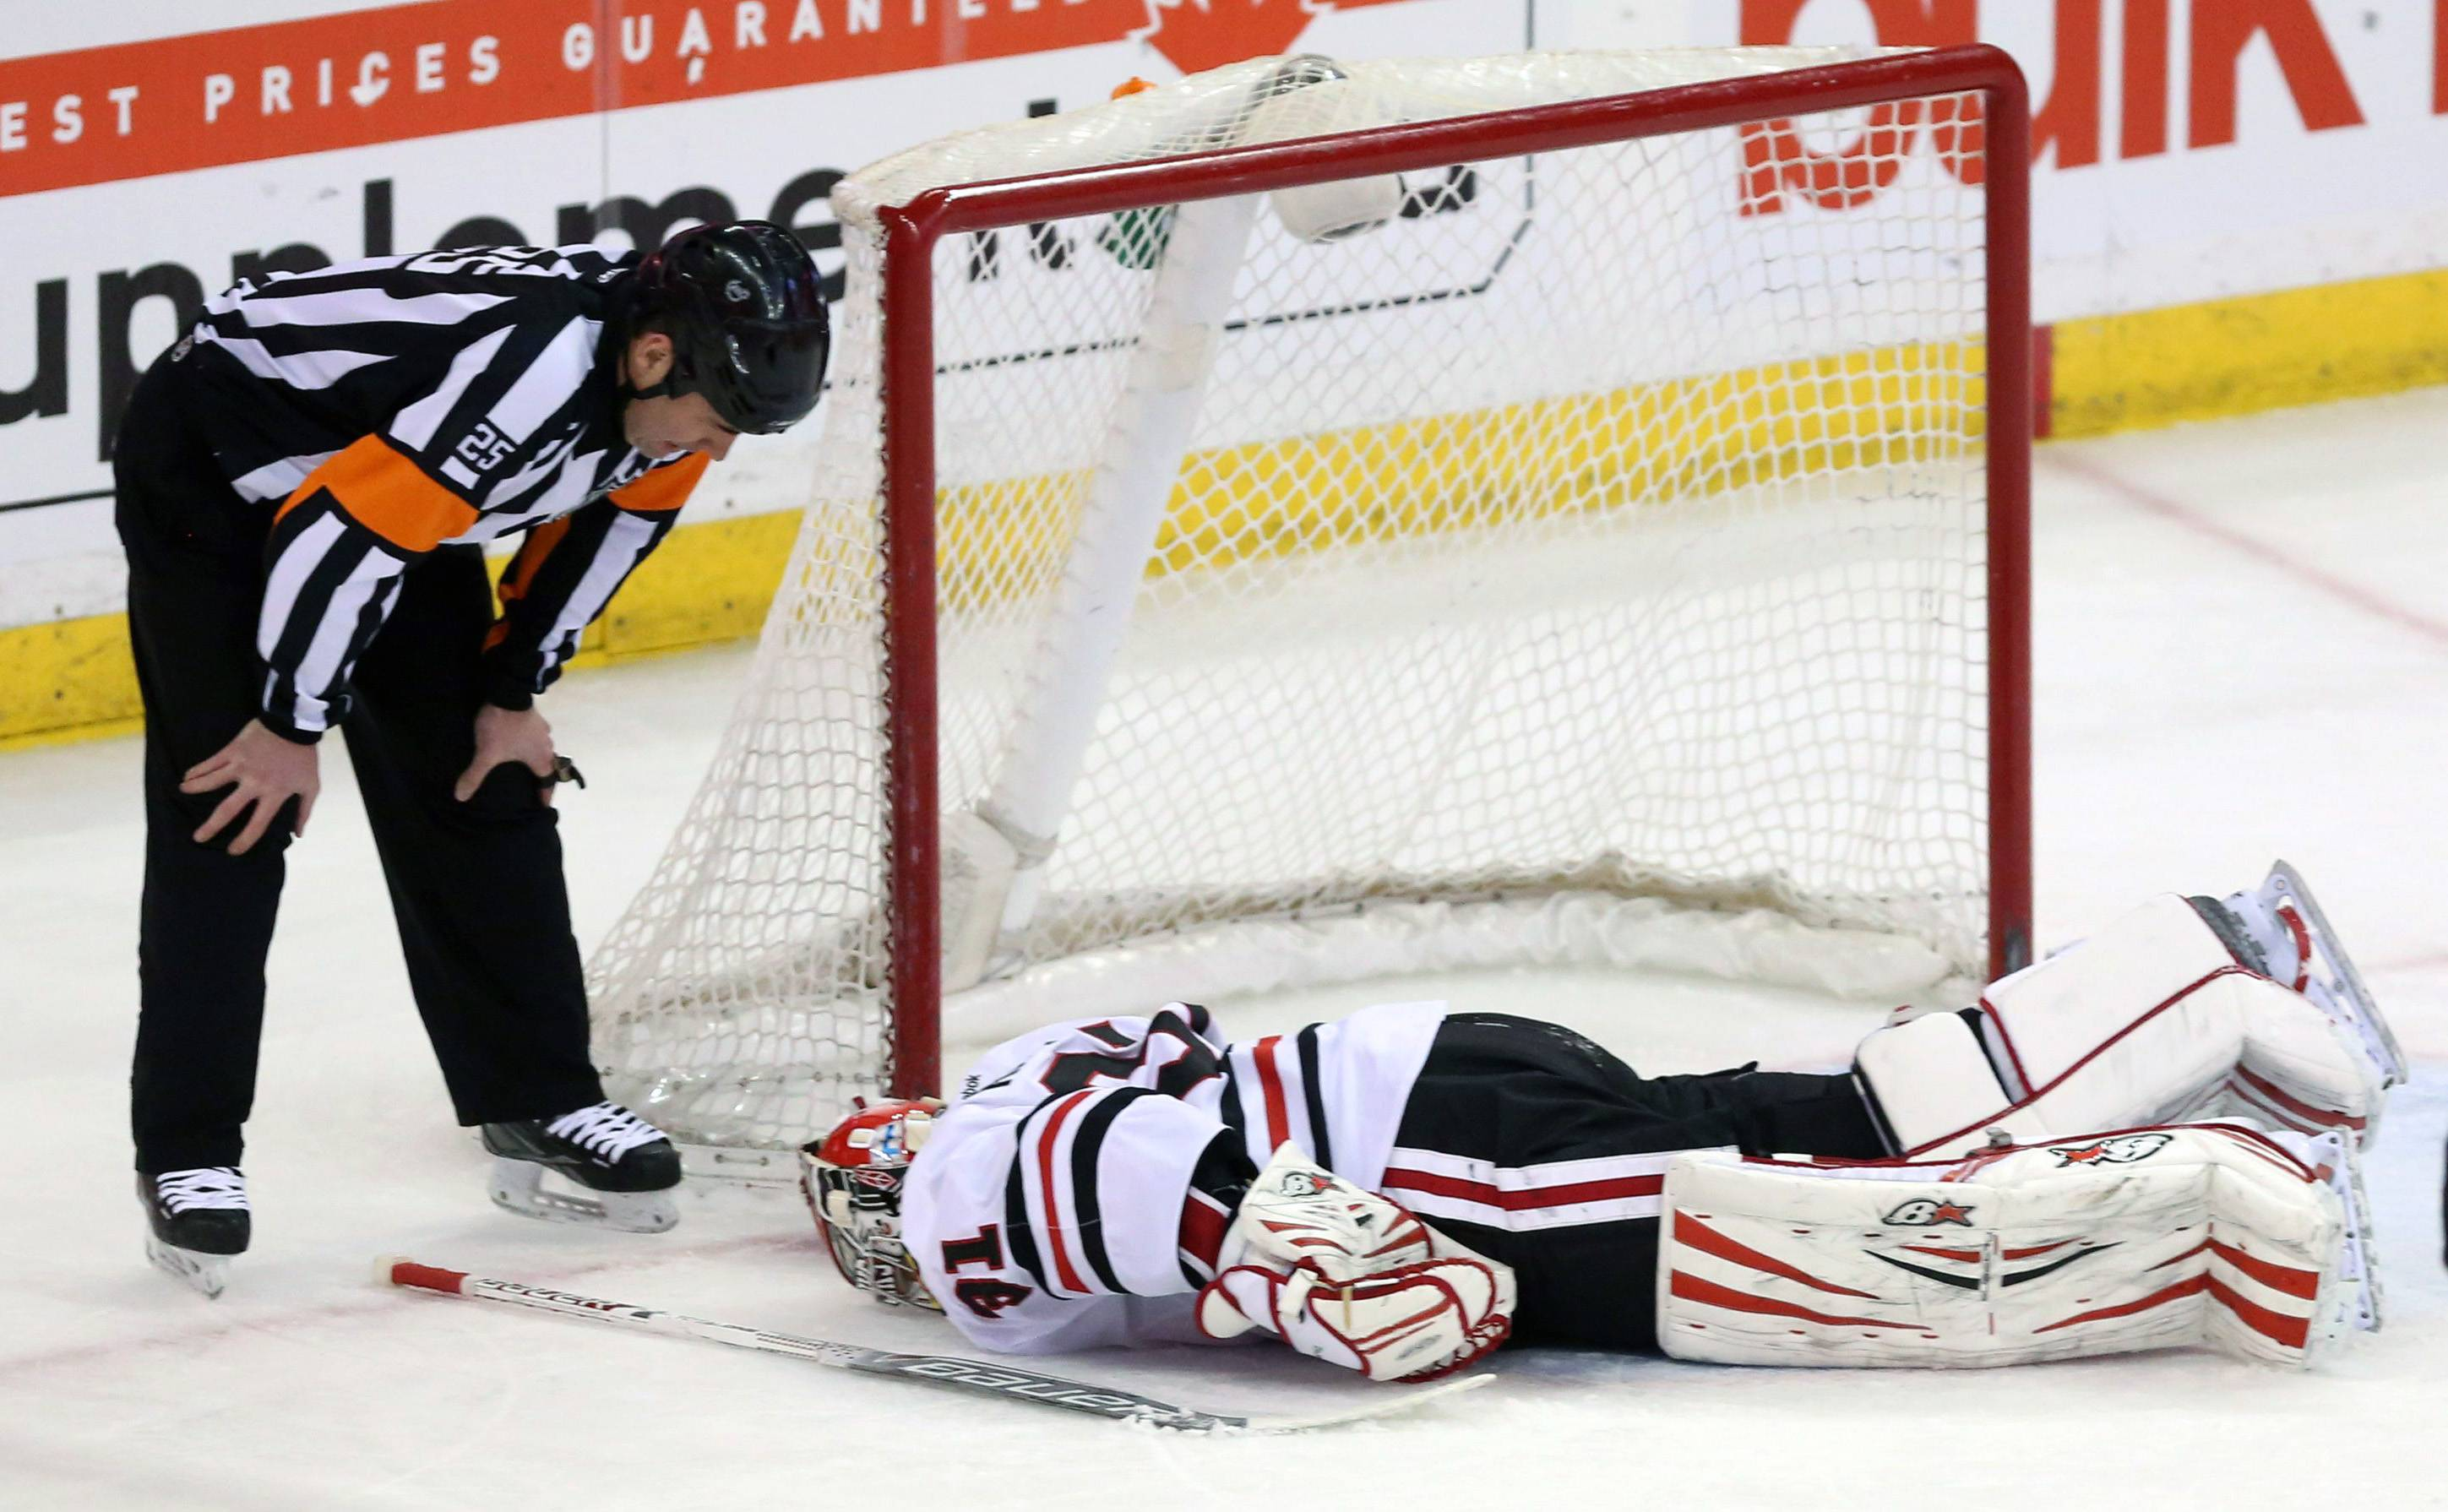 Chicago Blackhawks goaltender Antti Raanta (31), of Finland, lies injured near his net as referee Marc Joannette looks at him during first-period NHL hockey game action against the Ottawa Senators in Ottawa, Ontario, Friday, March 28, 2014. Raanta stayed in the game.